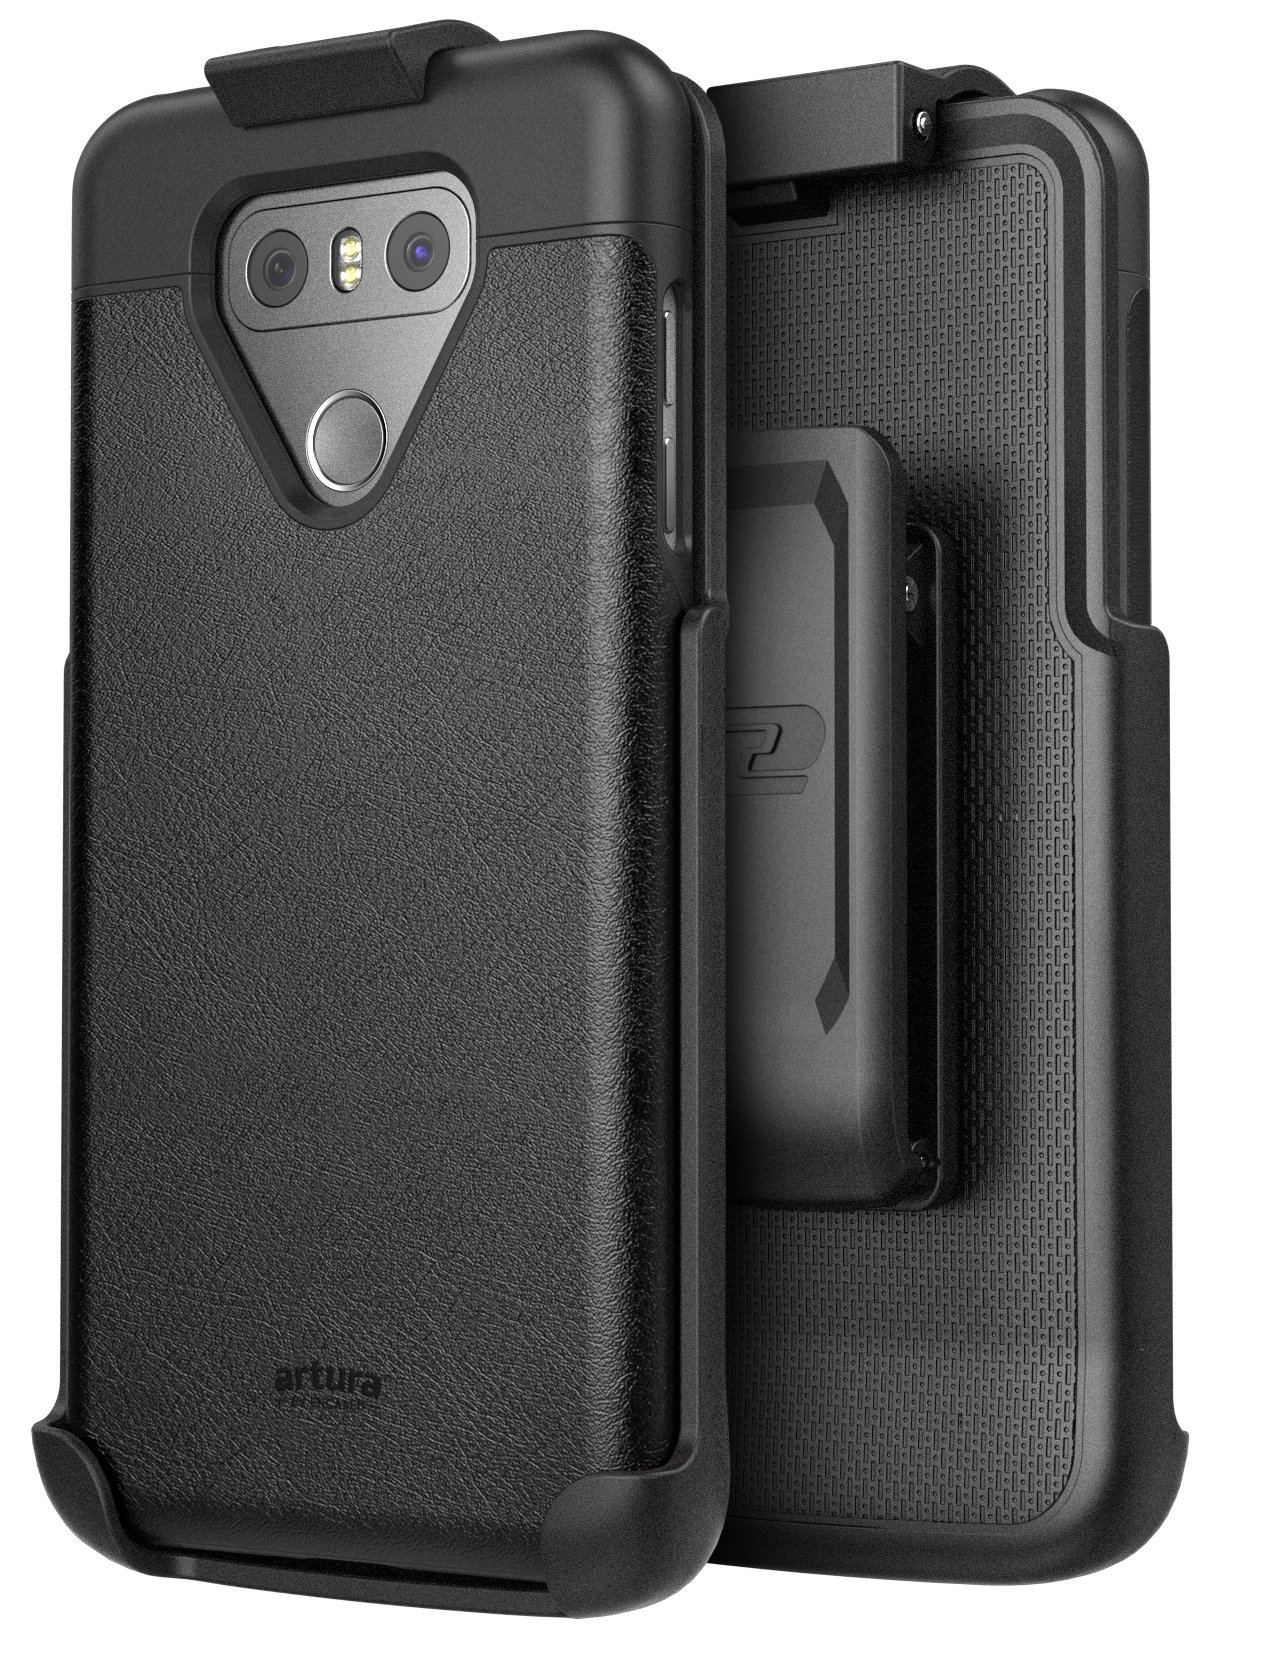 size 40 f57e3 7577a LG G6 Artura Case And Holster Black